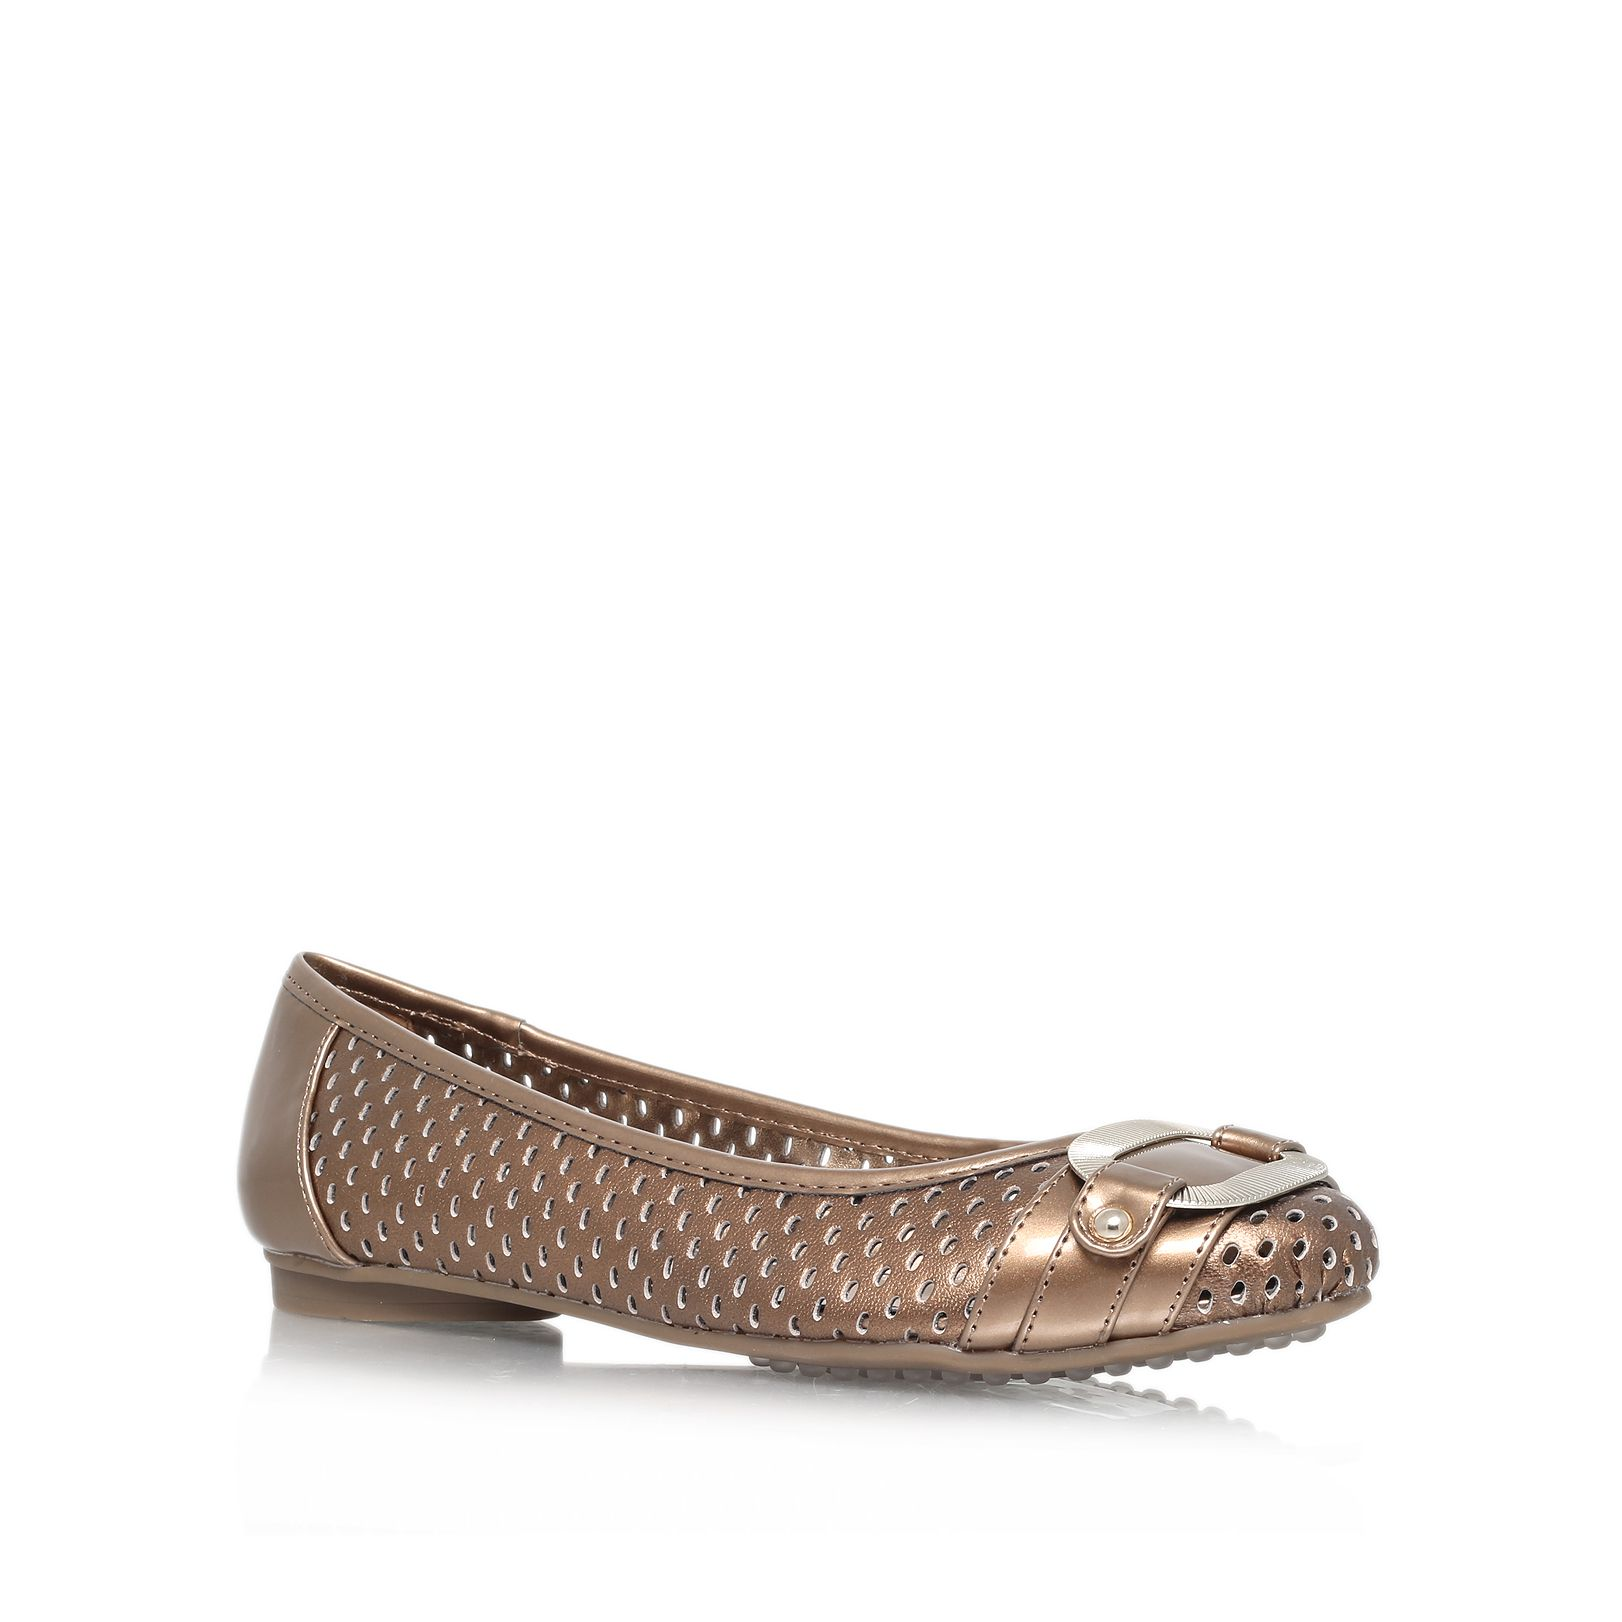 Babita flat ballerina shoes